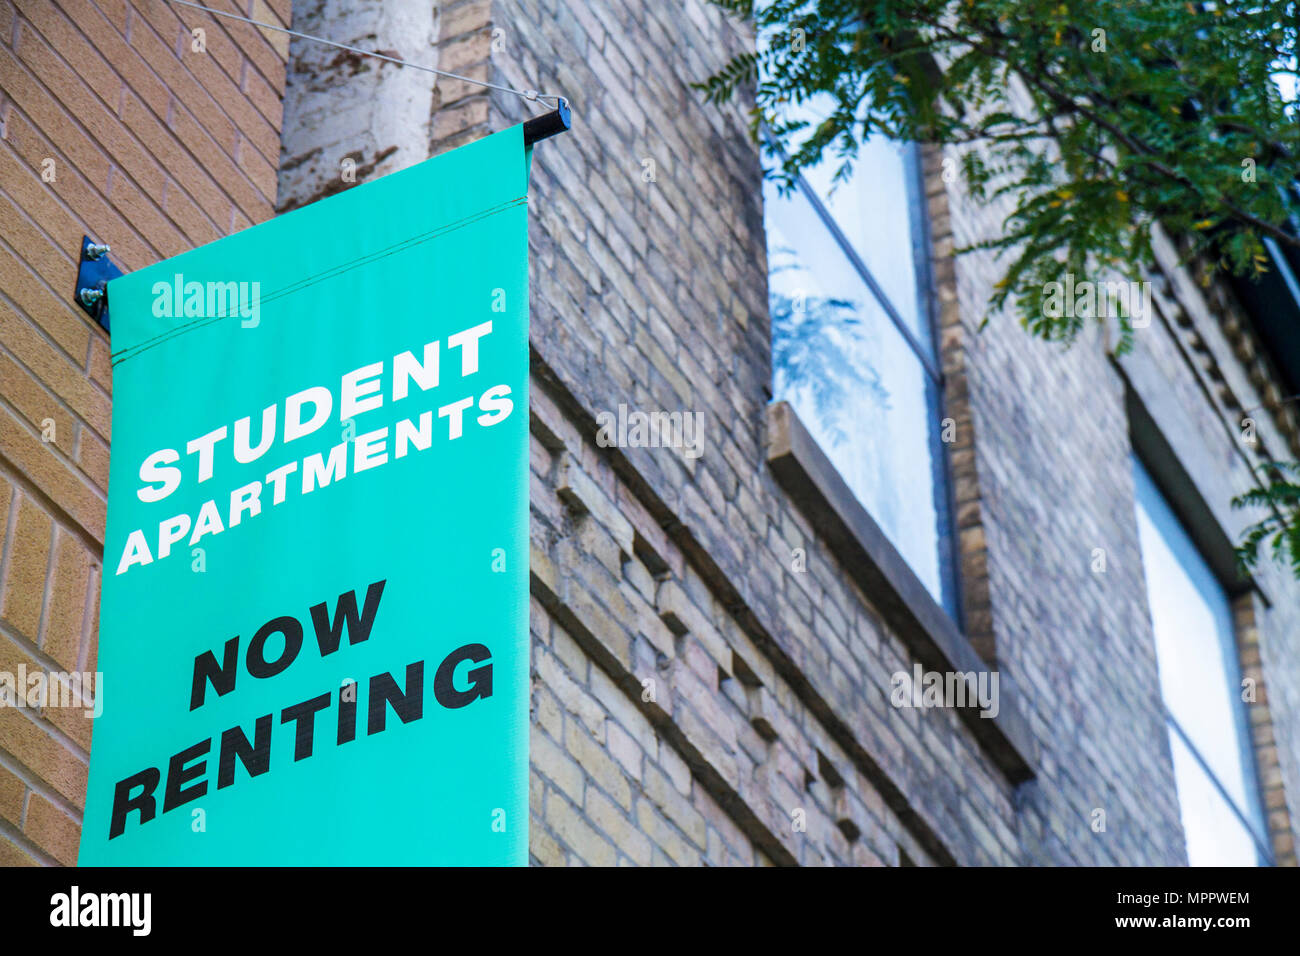 Renting Apartments Toronto Canada Ontario Gerrard Street East Rental Apartments